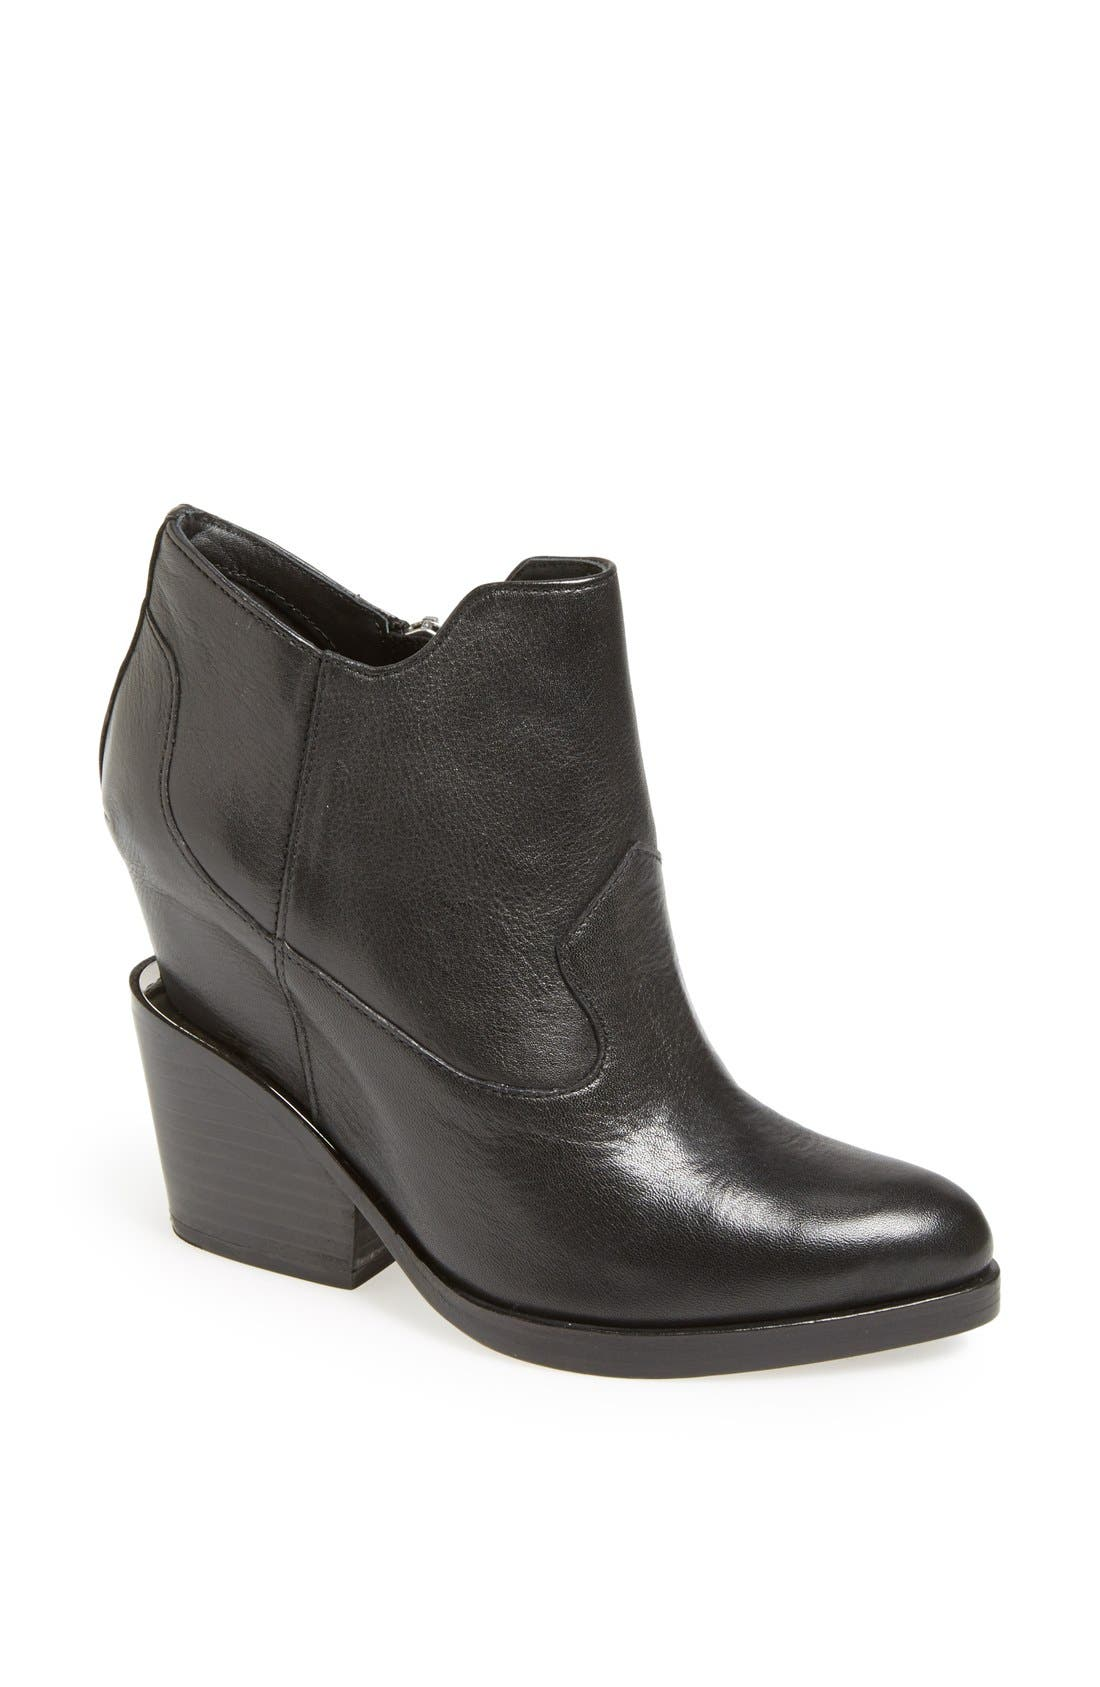 Main Image - Ash 'Lula' Leather Bootie